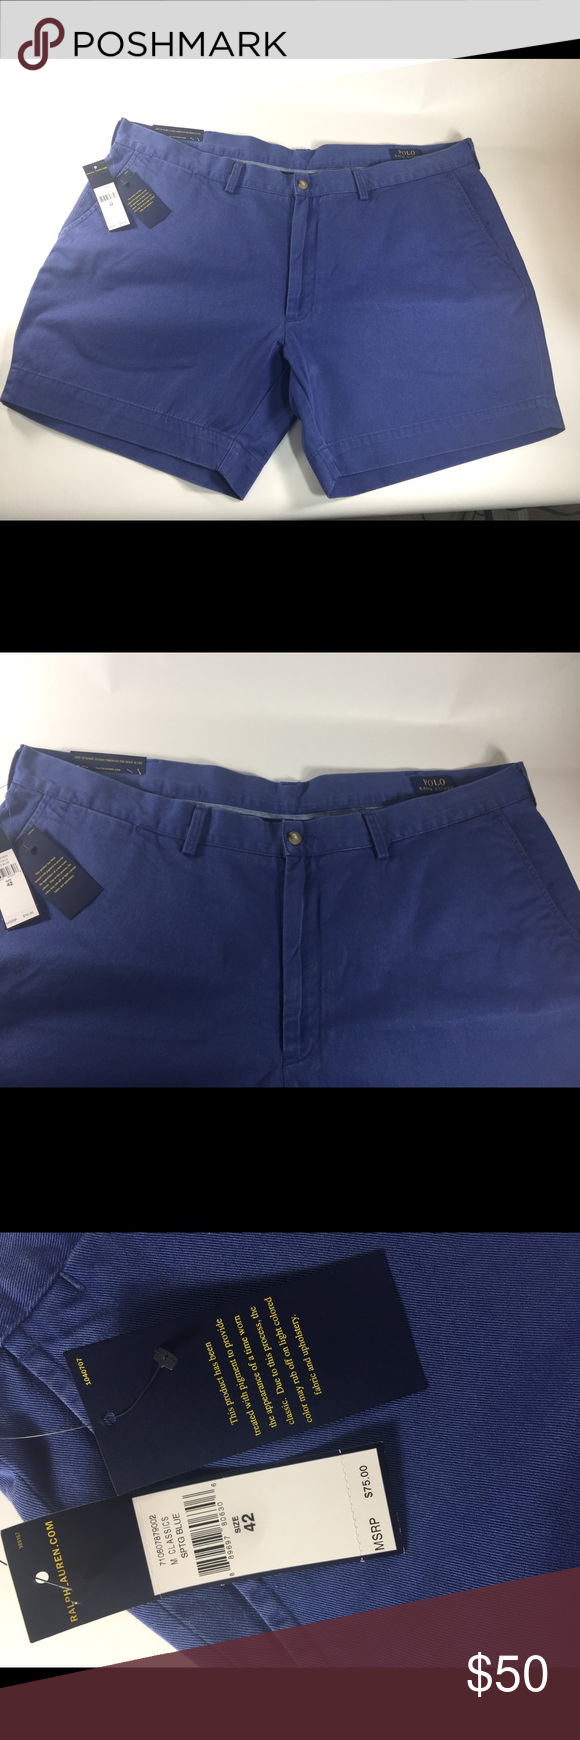 """Polo Ralph Lauren Blue Classic Shorts Size 42 Up for sale is this pair of Mens Ralph Lauren Flat Front Shorts in a size 42 that are brand new with tags! • Waist measures 42.5"""" and length 16"""". • Straight through hip & thigh • Soft but durable twill • Two front pockets; two back button pockets • 100 % Cotton • Machine wash Ralph Lauren Shorts Flat Front"""